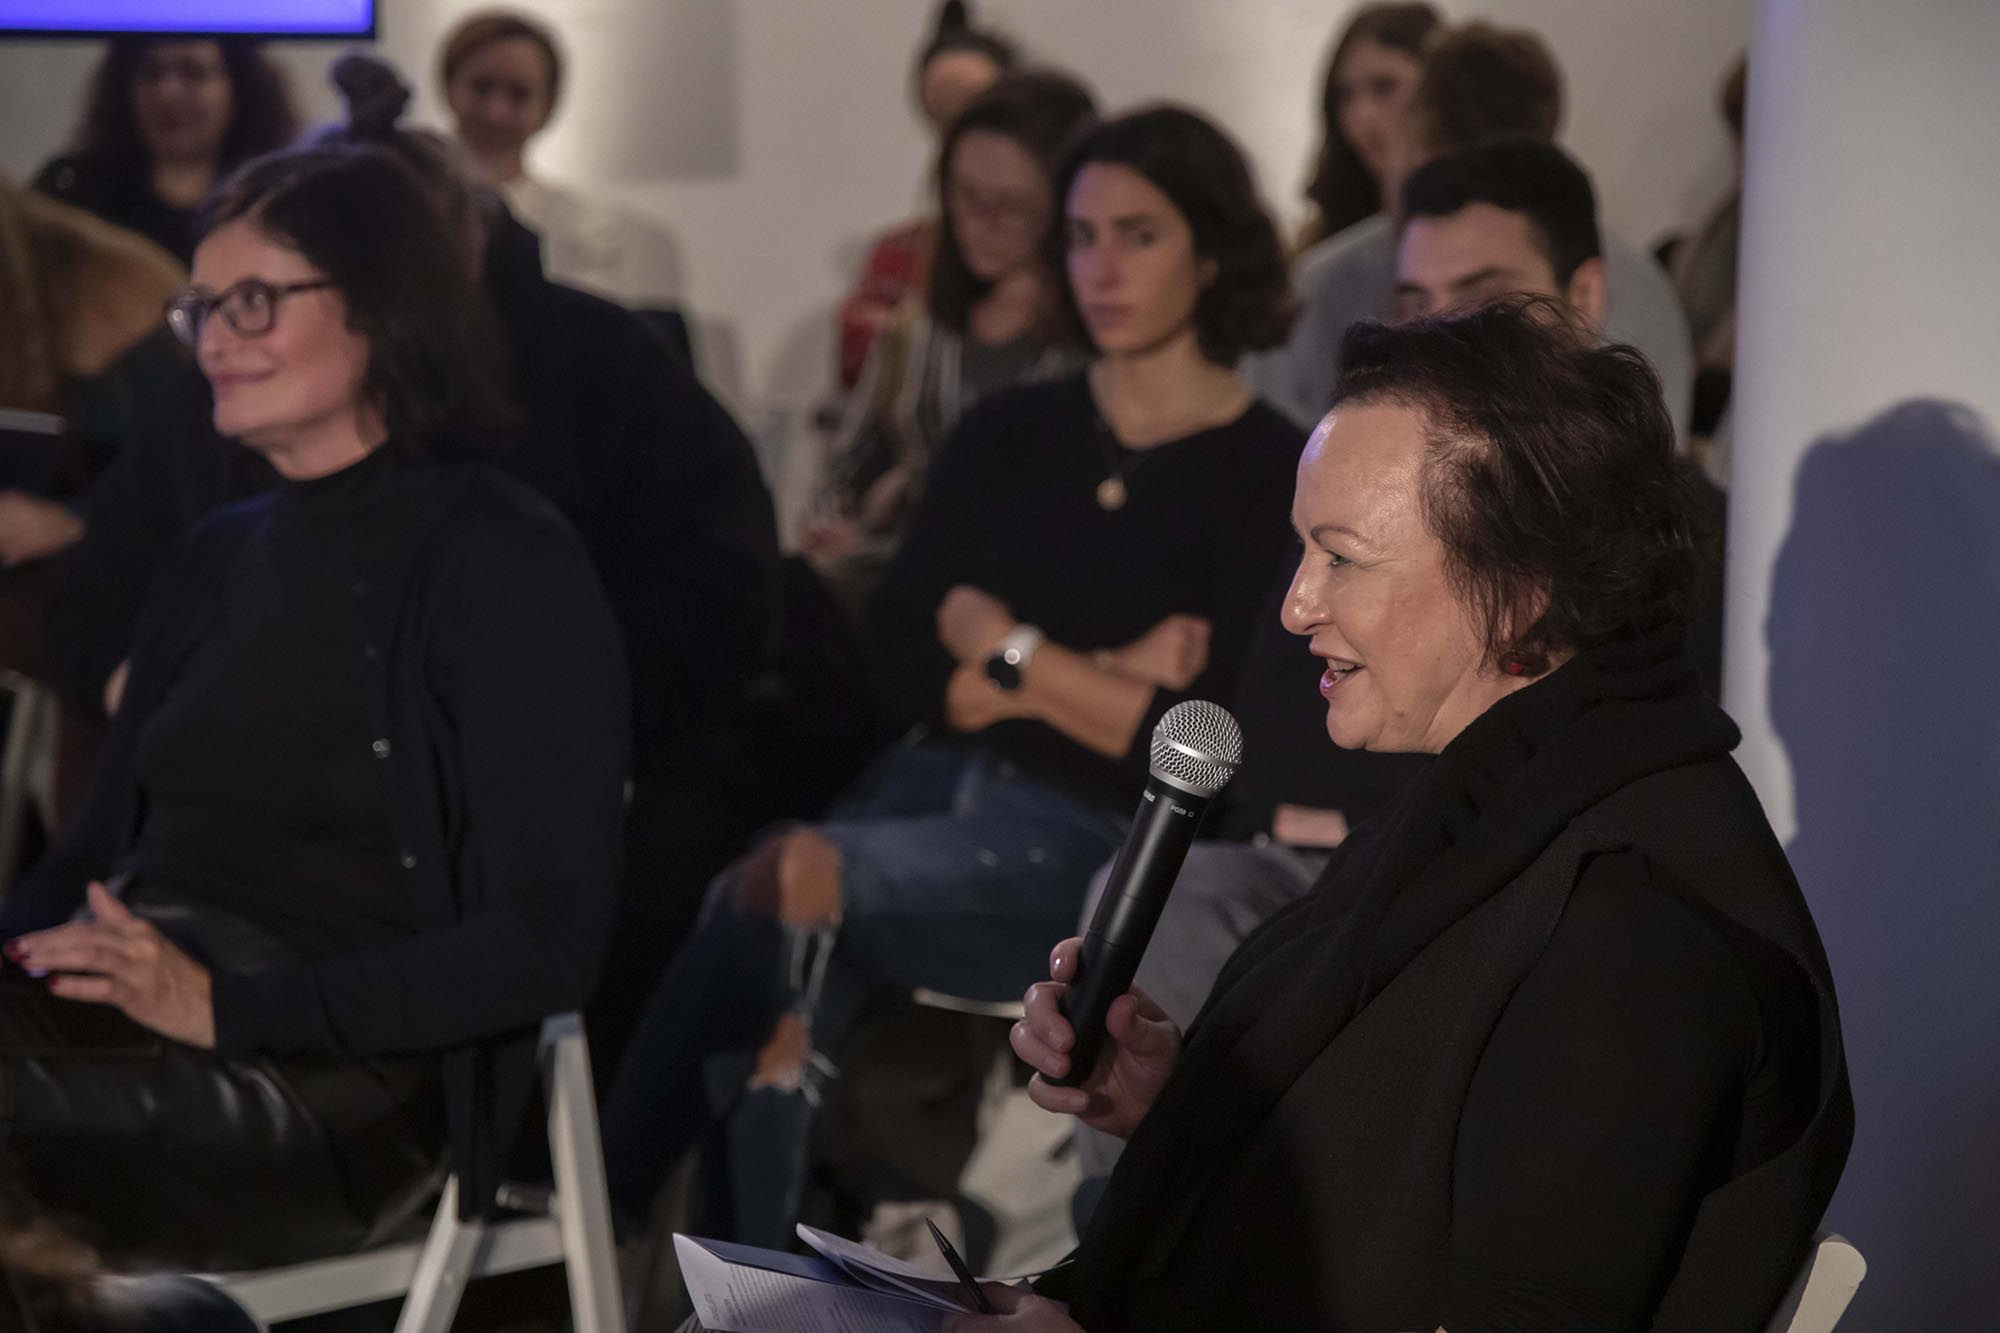 Sarah Wilson during The Right to Refuse Therme Forum at British Pavilion during the 2019 Venice Biennale